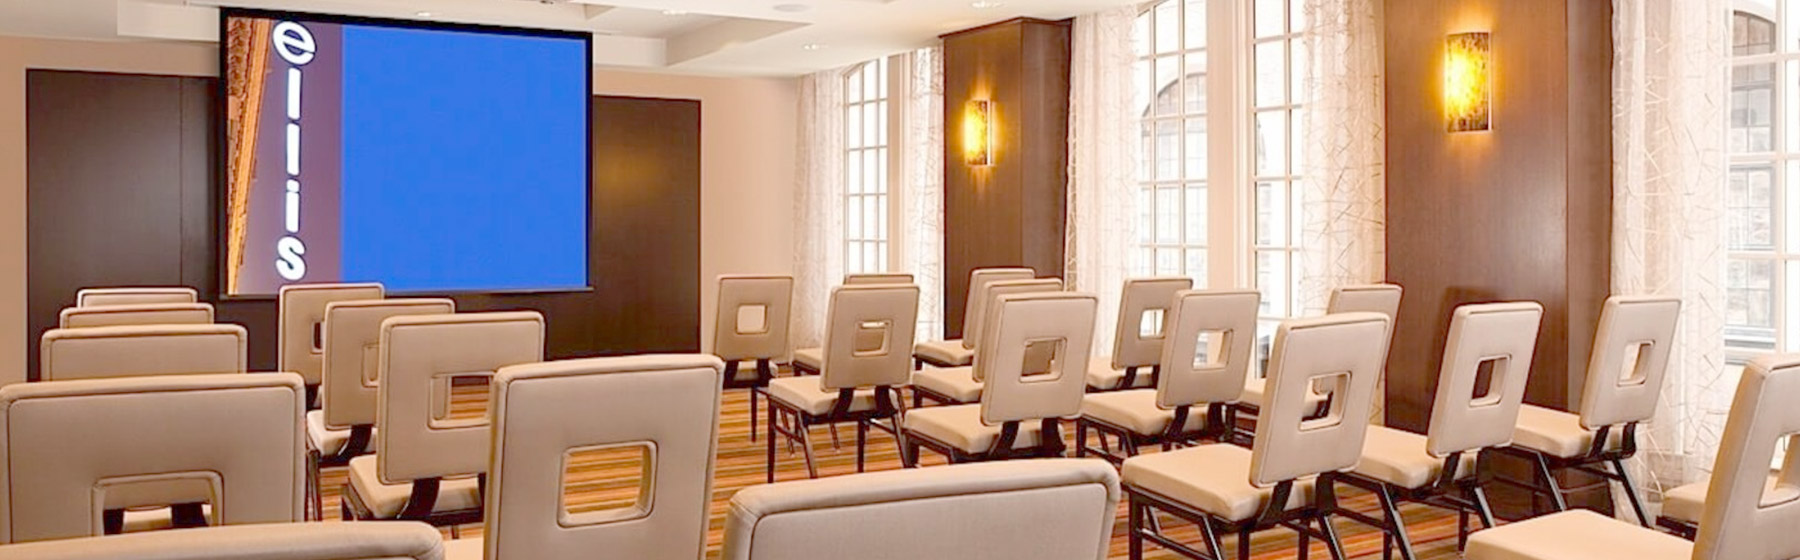 Choose Our Hotel for Your Meeting in Atlanta